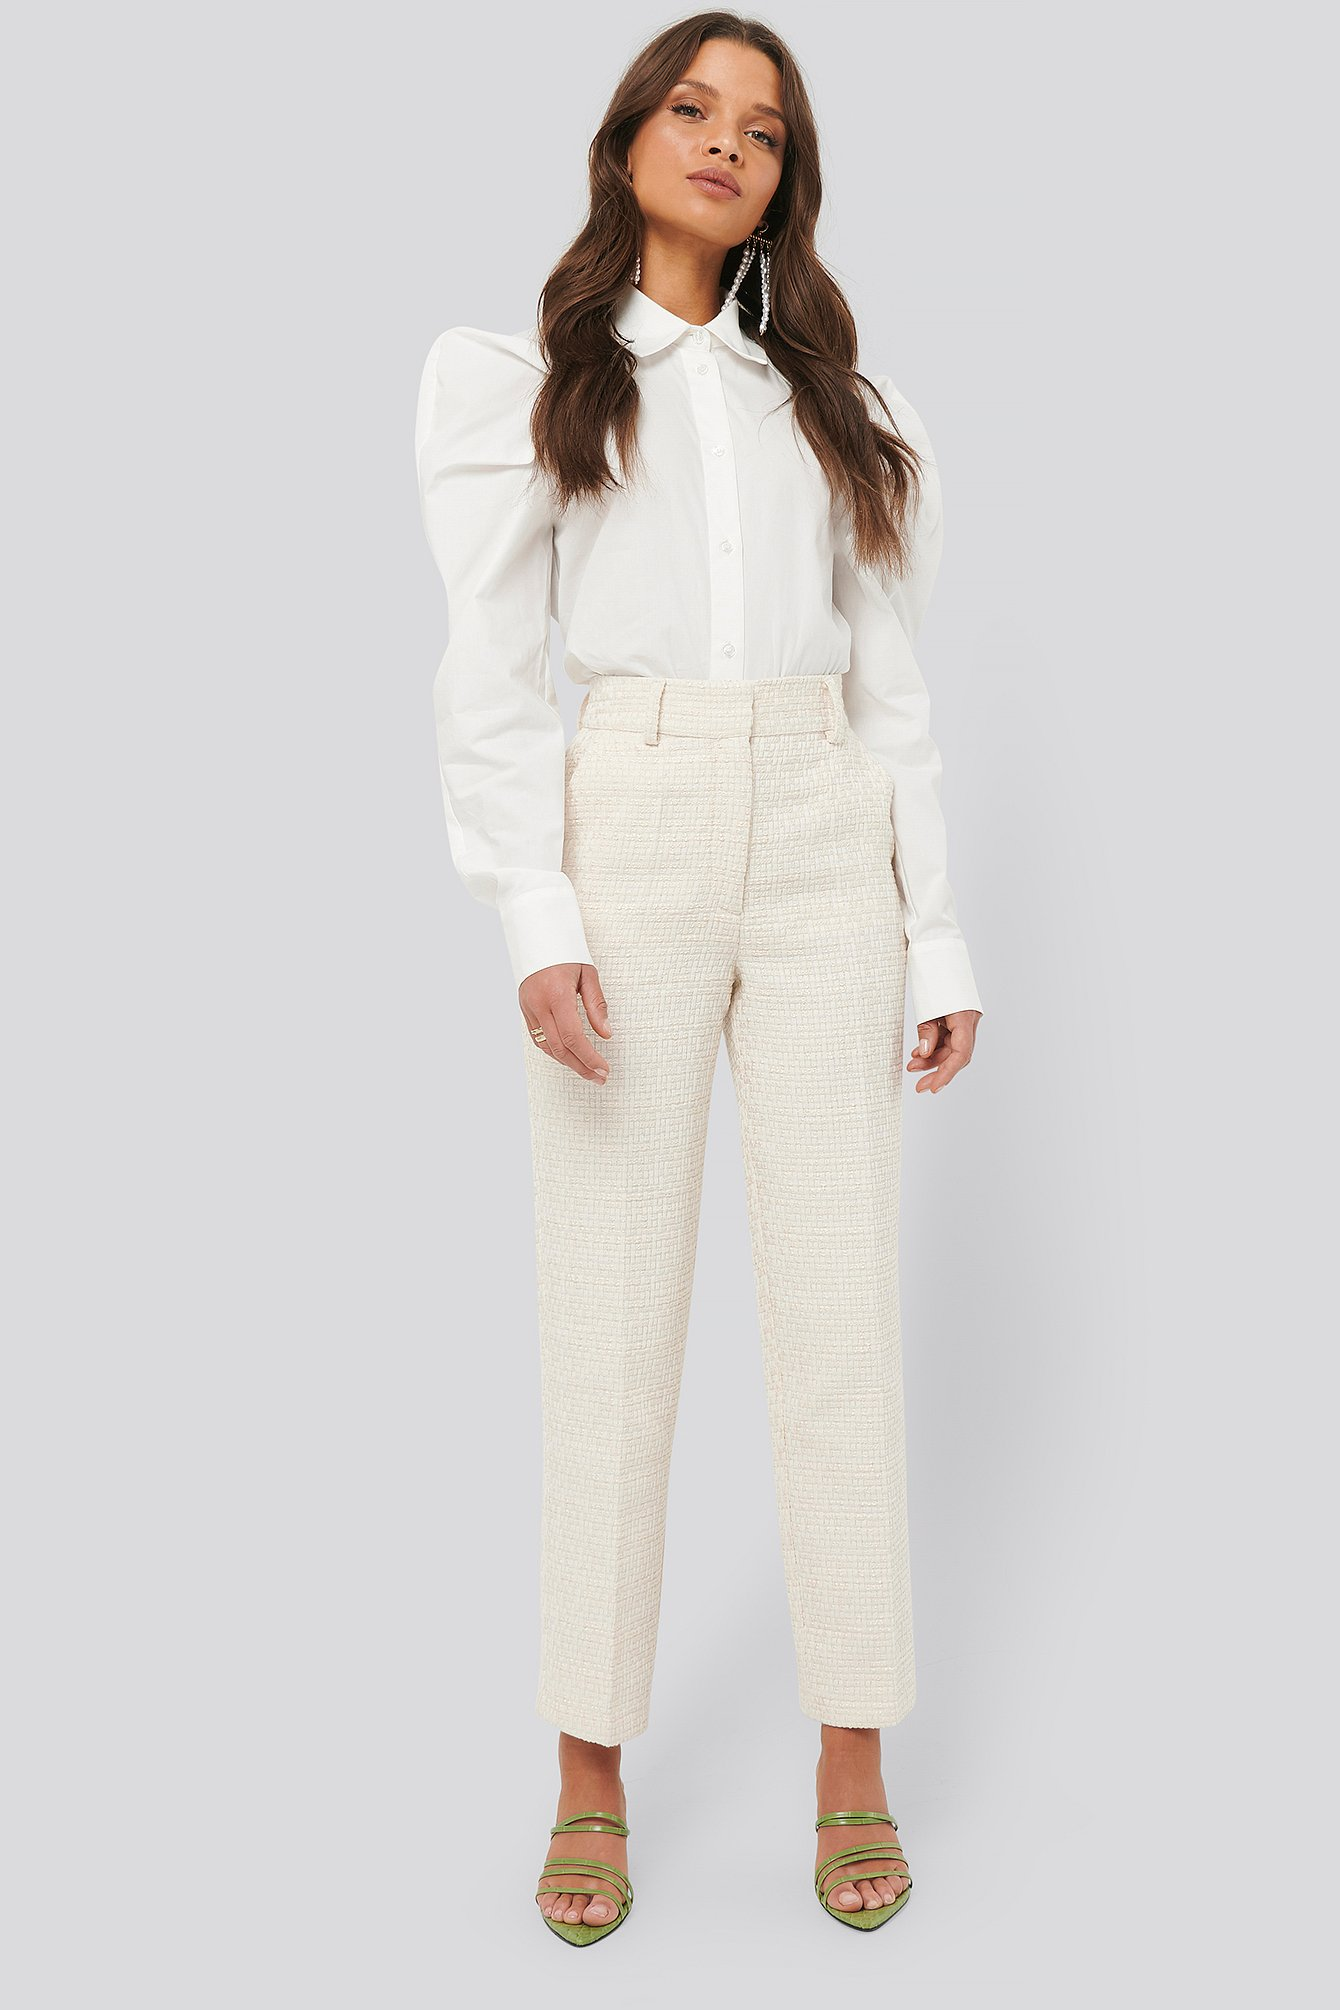 Cream Tweed Suit Pants